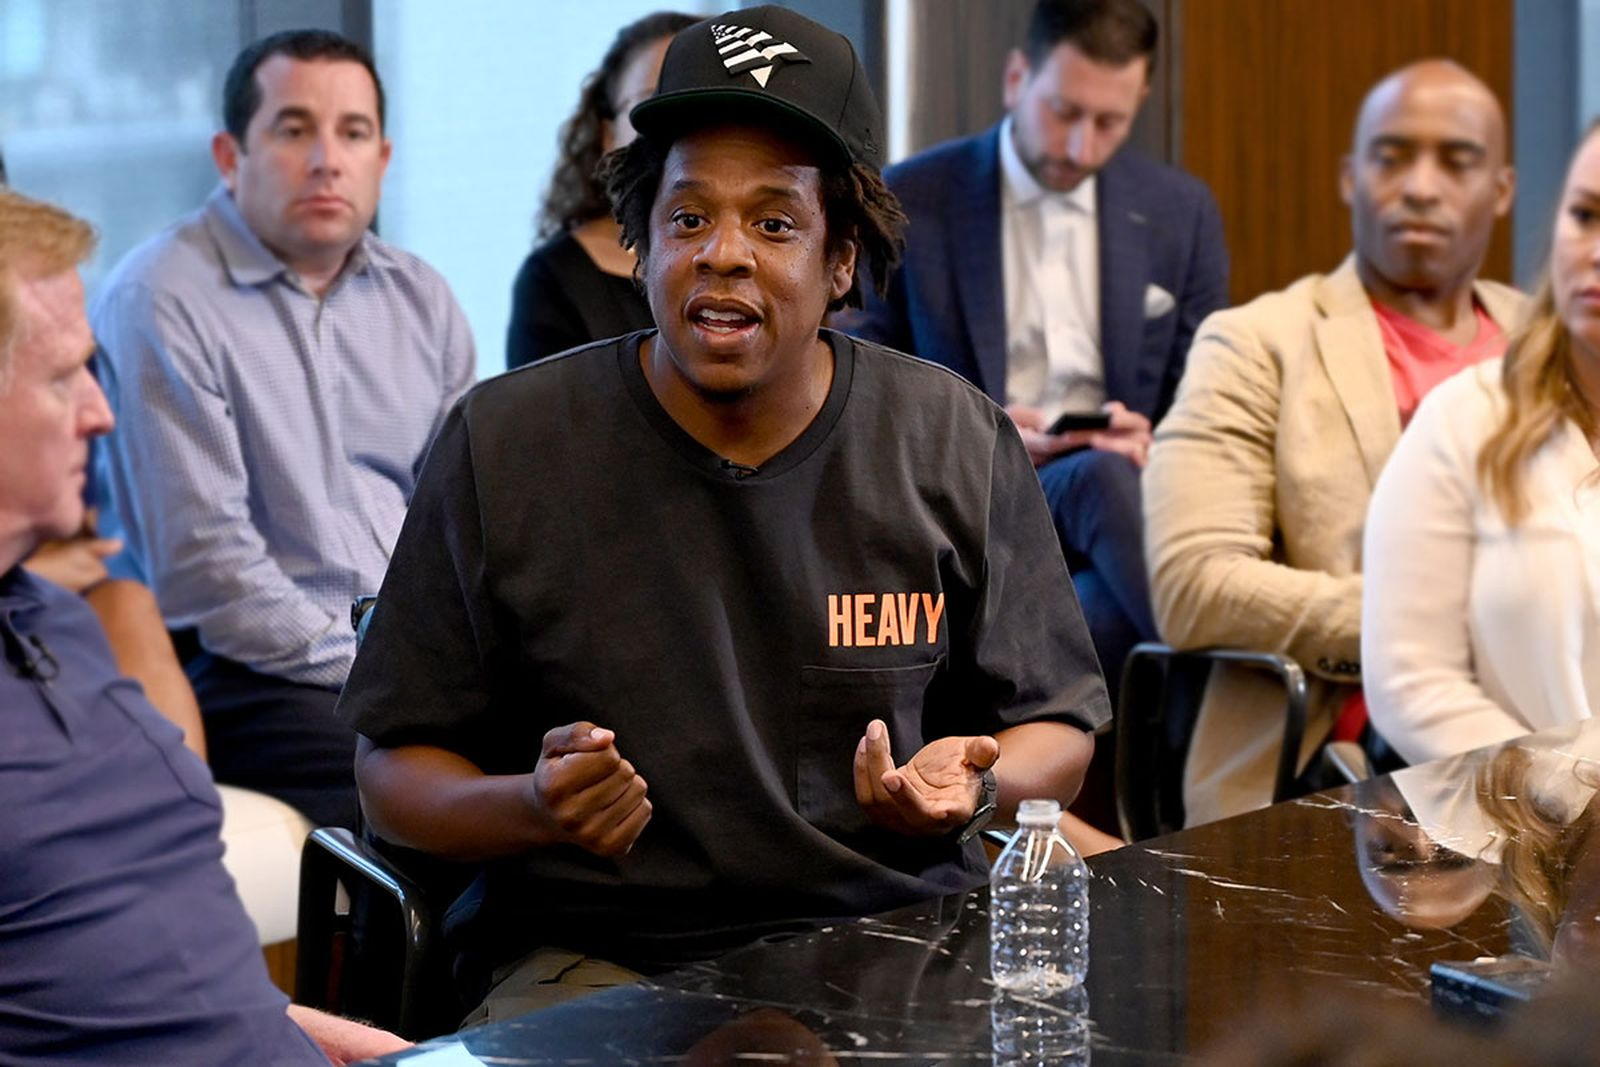 Jay Z at the Roc Nation and NFL Partnership Announcement